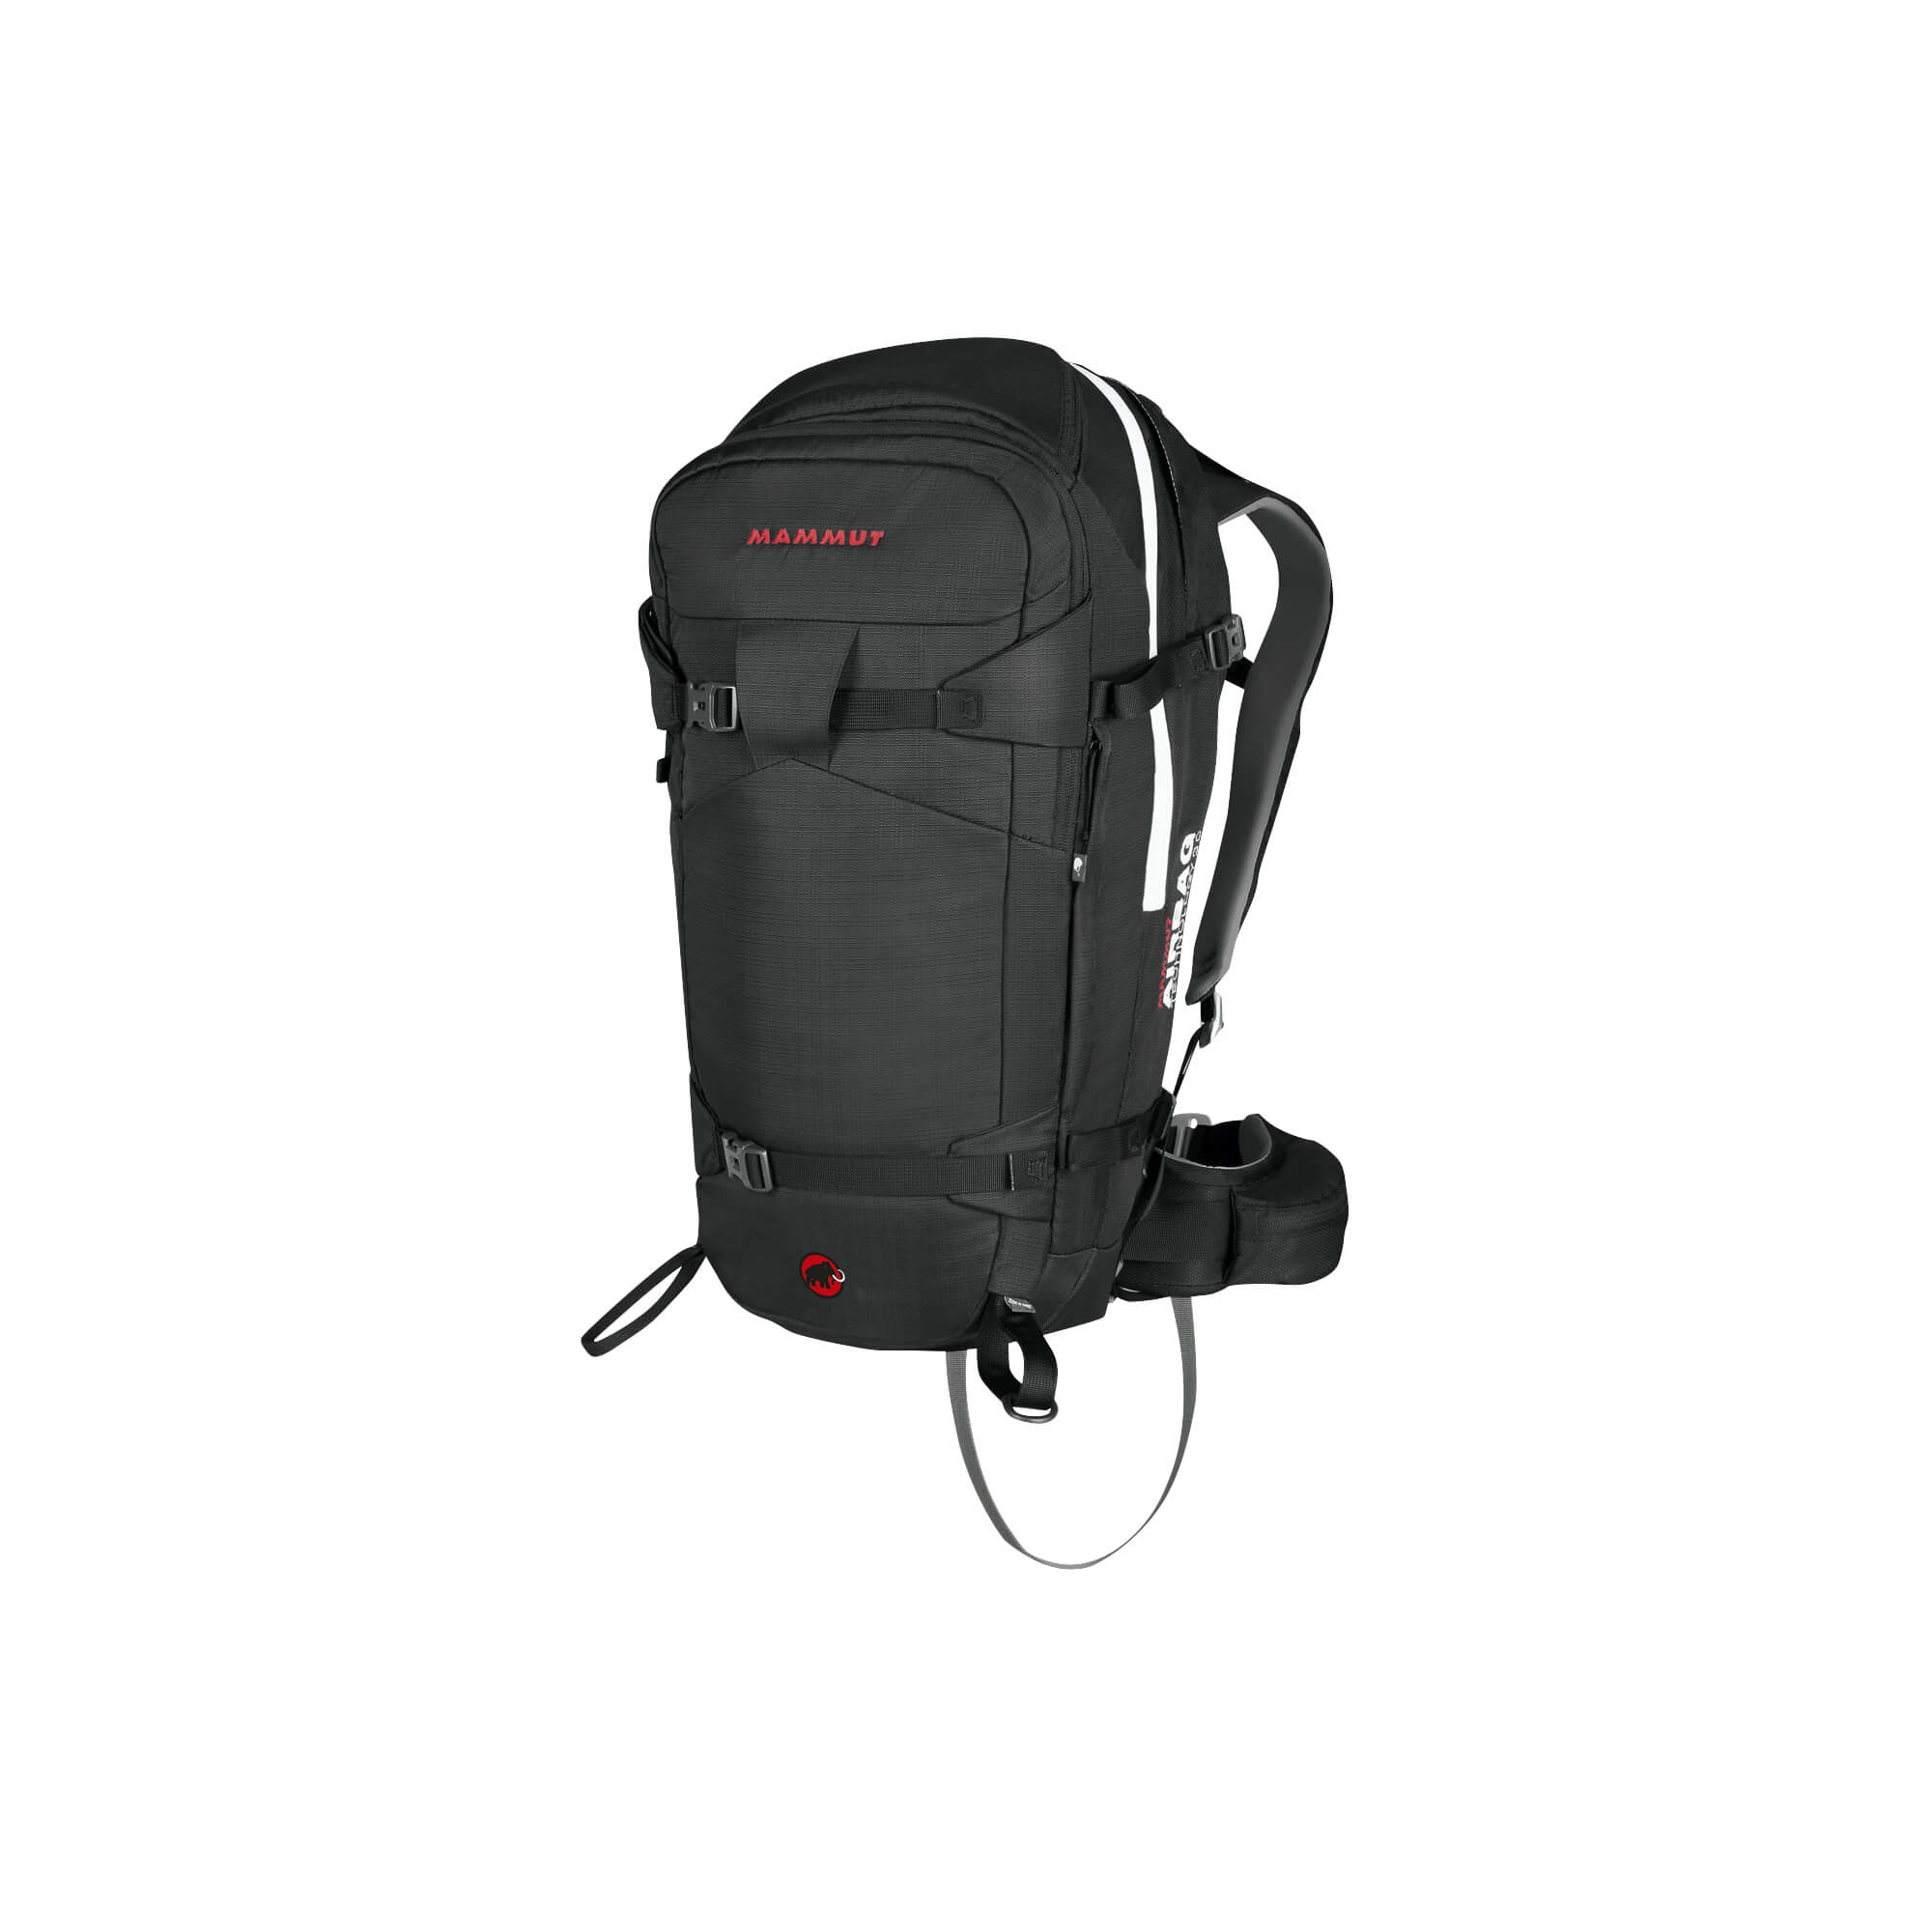 Mammut Pro Removable Airbag 3.0, vel. none